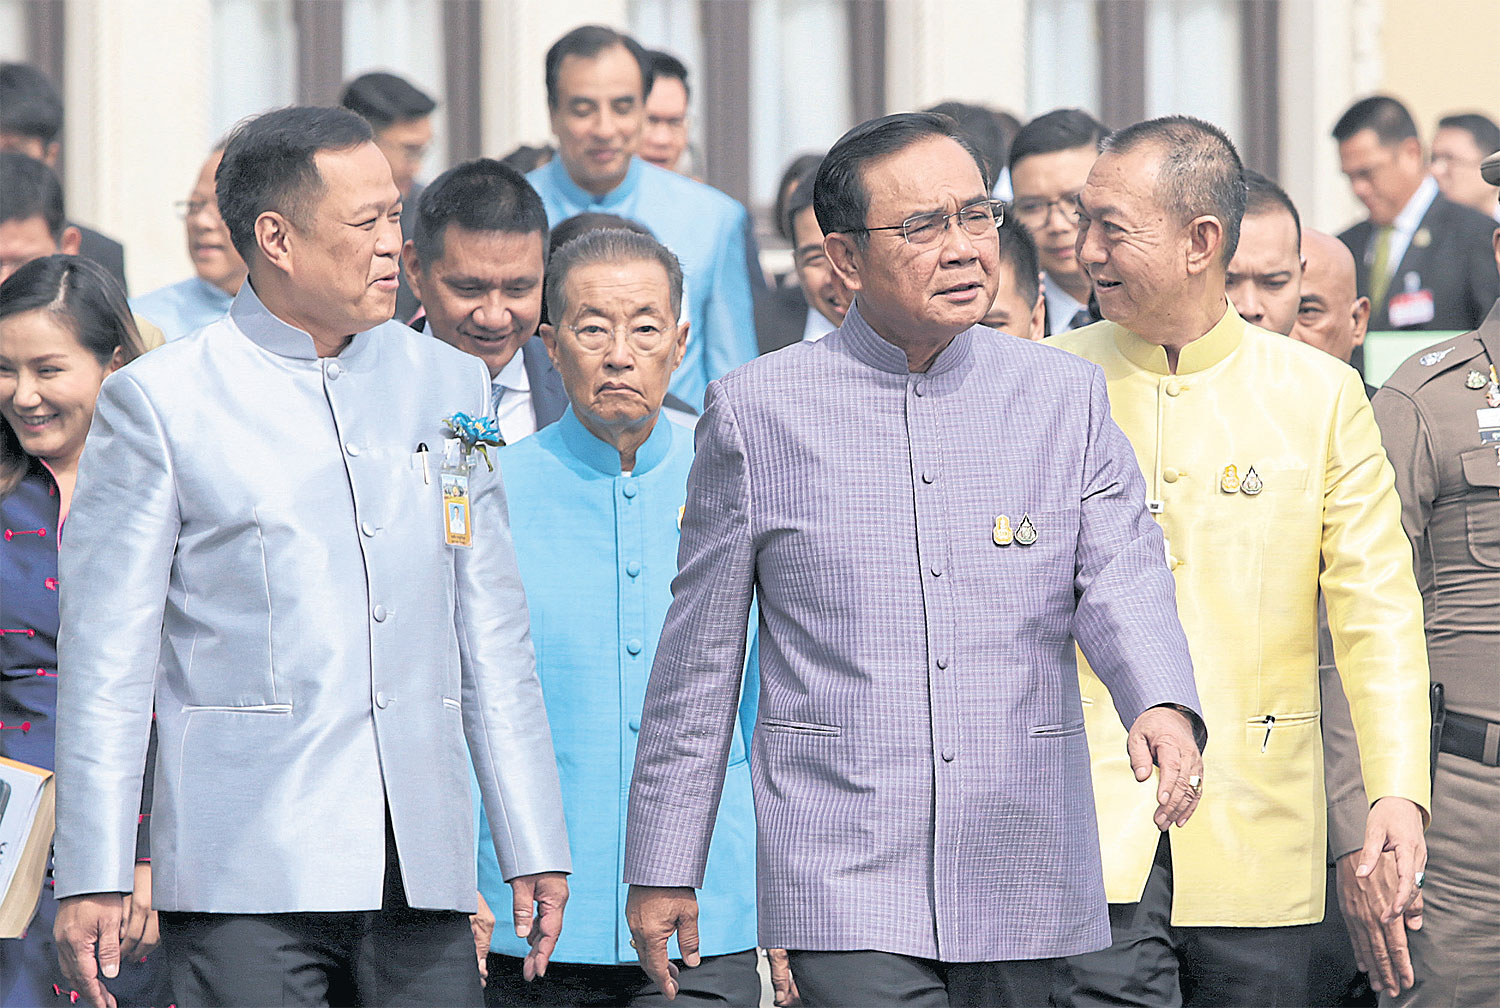 Prime Minister Prayut Chan-o-cha and some of his cabinet ministers. A series of crises demonstrates the failure of an authoritarian-bureaucratic state under his leadership. Chanat Katanyu